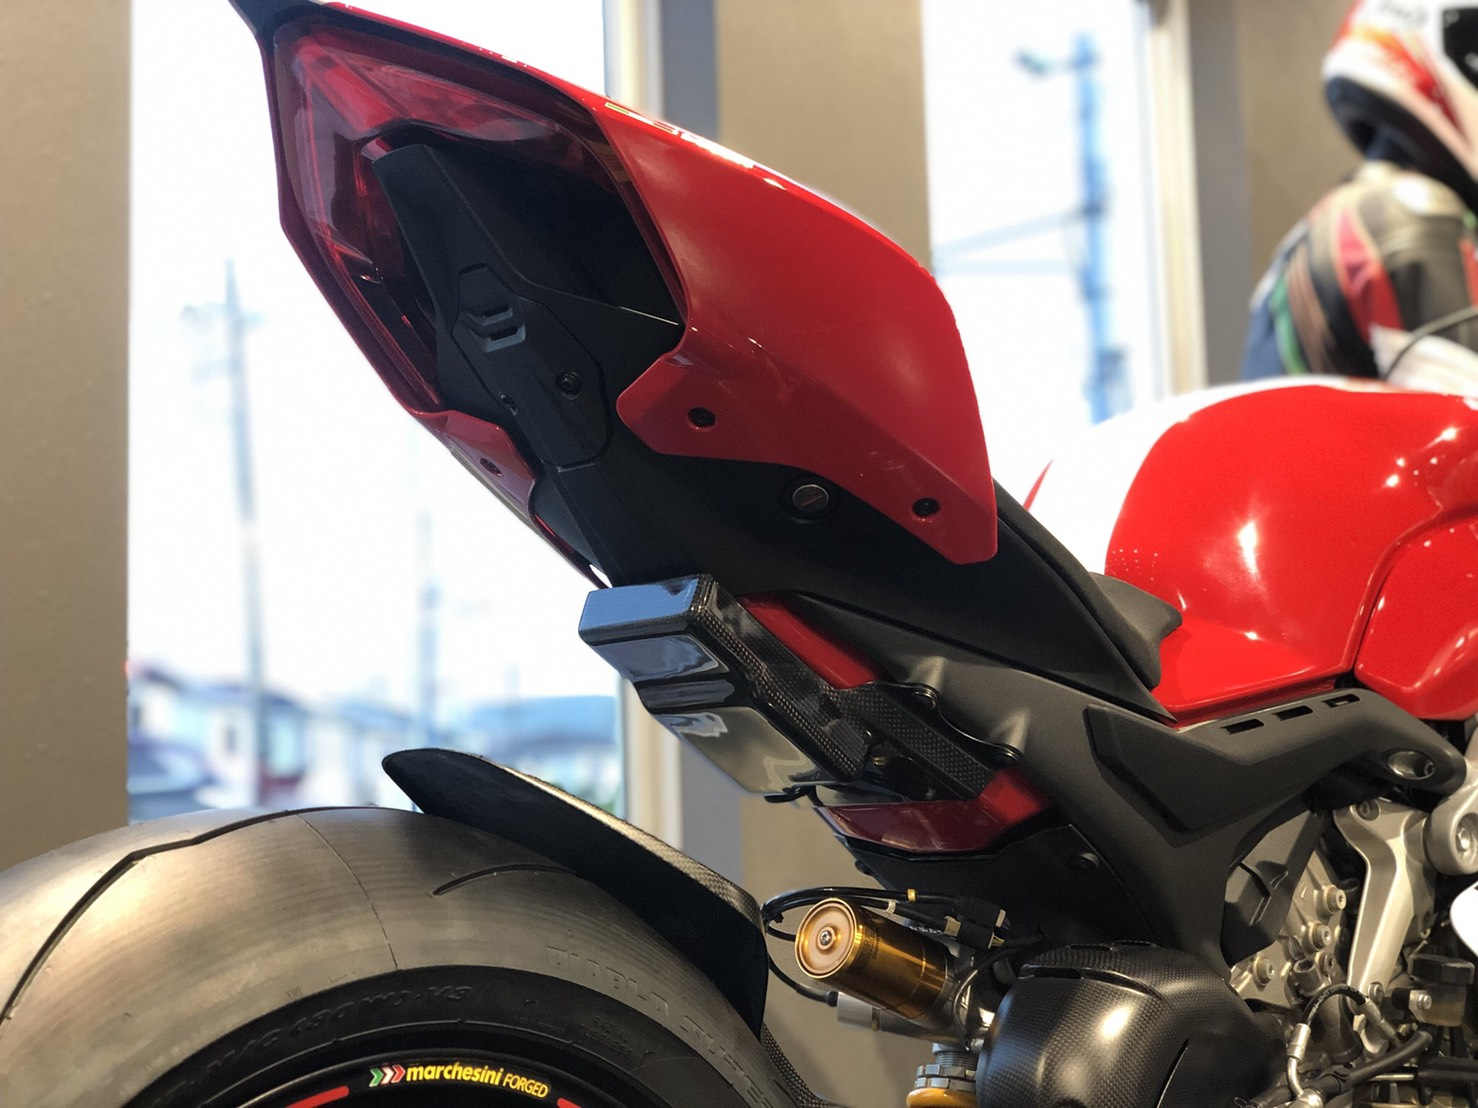 PANIGALE V4用ETCケースキット